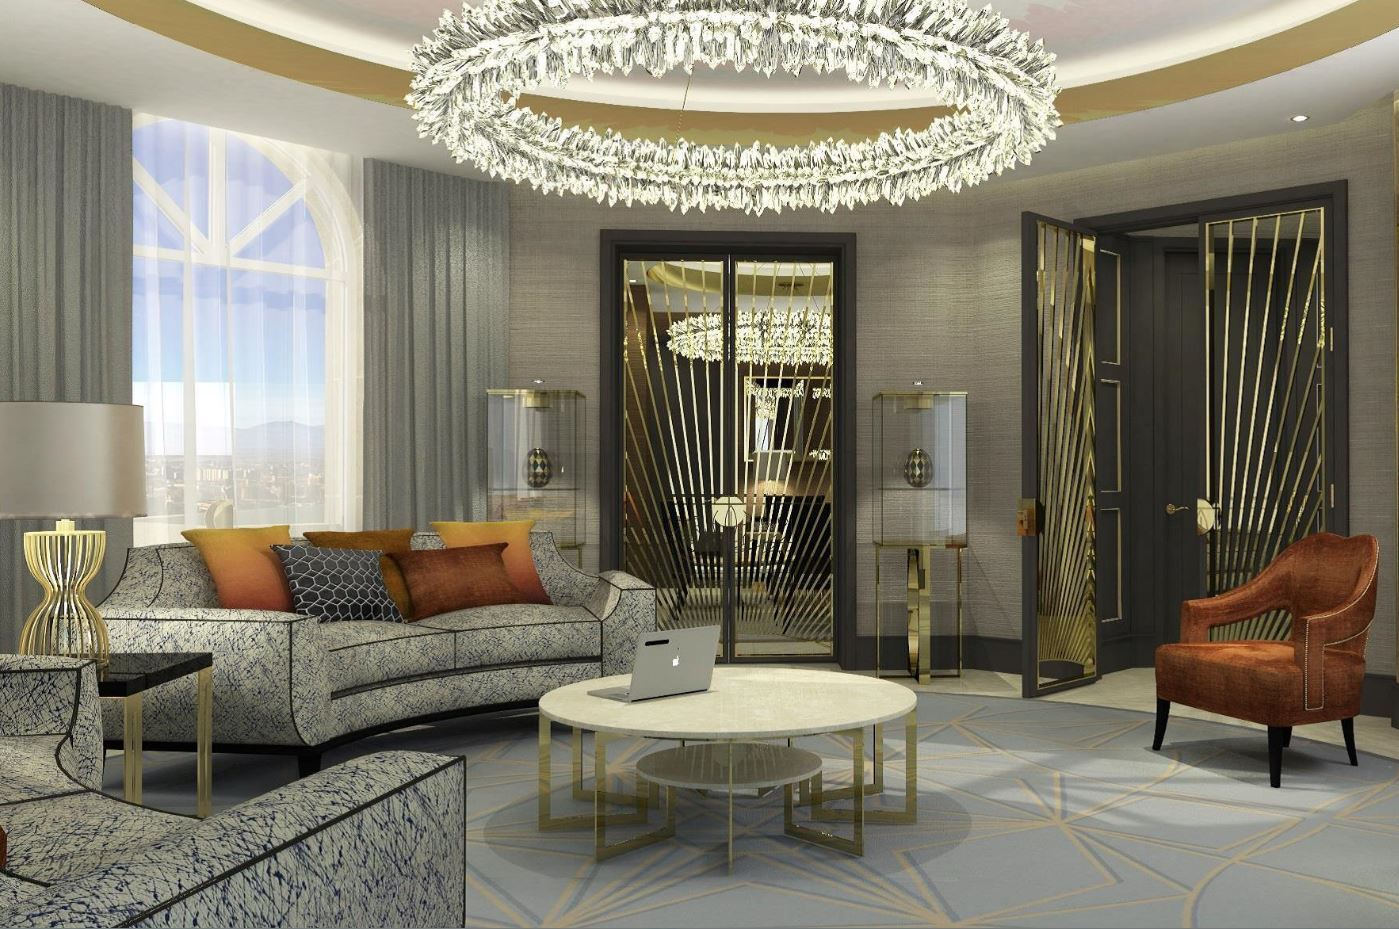 Starwood Hotels Resorts To Debut Its First Hotel In Armenia Business Wire